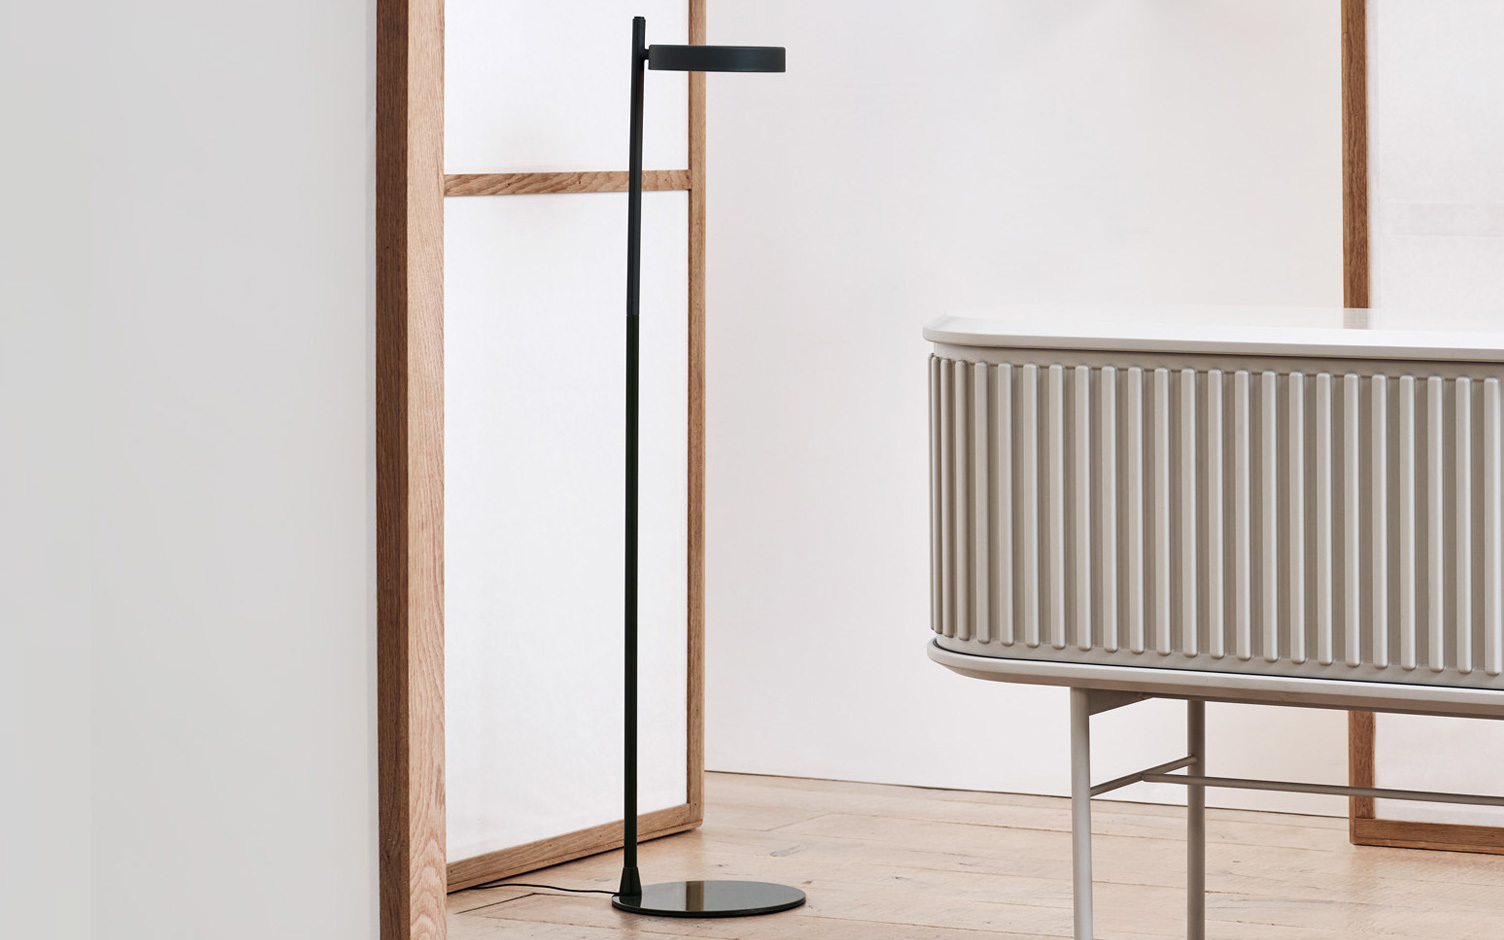 Floor Lamps catalogue image